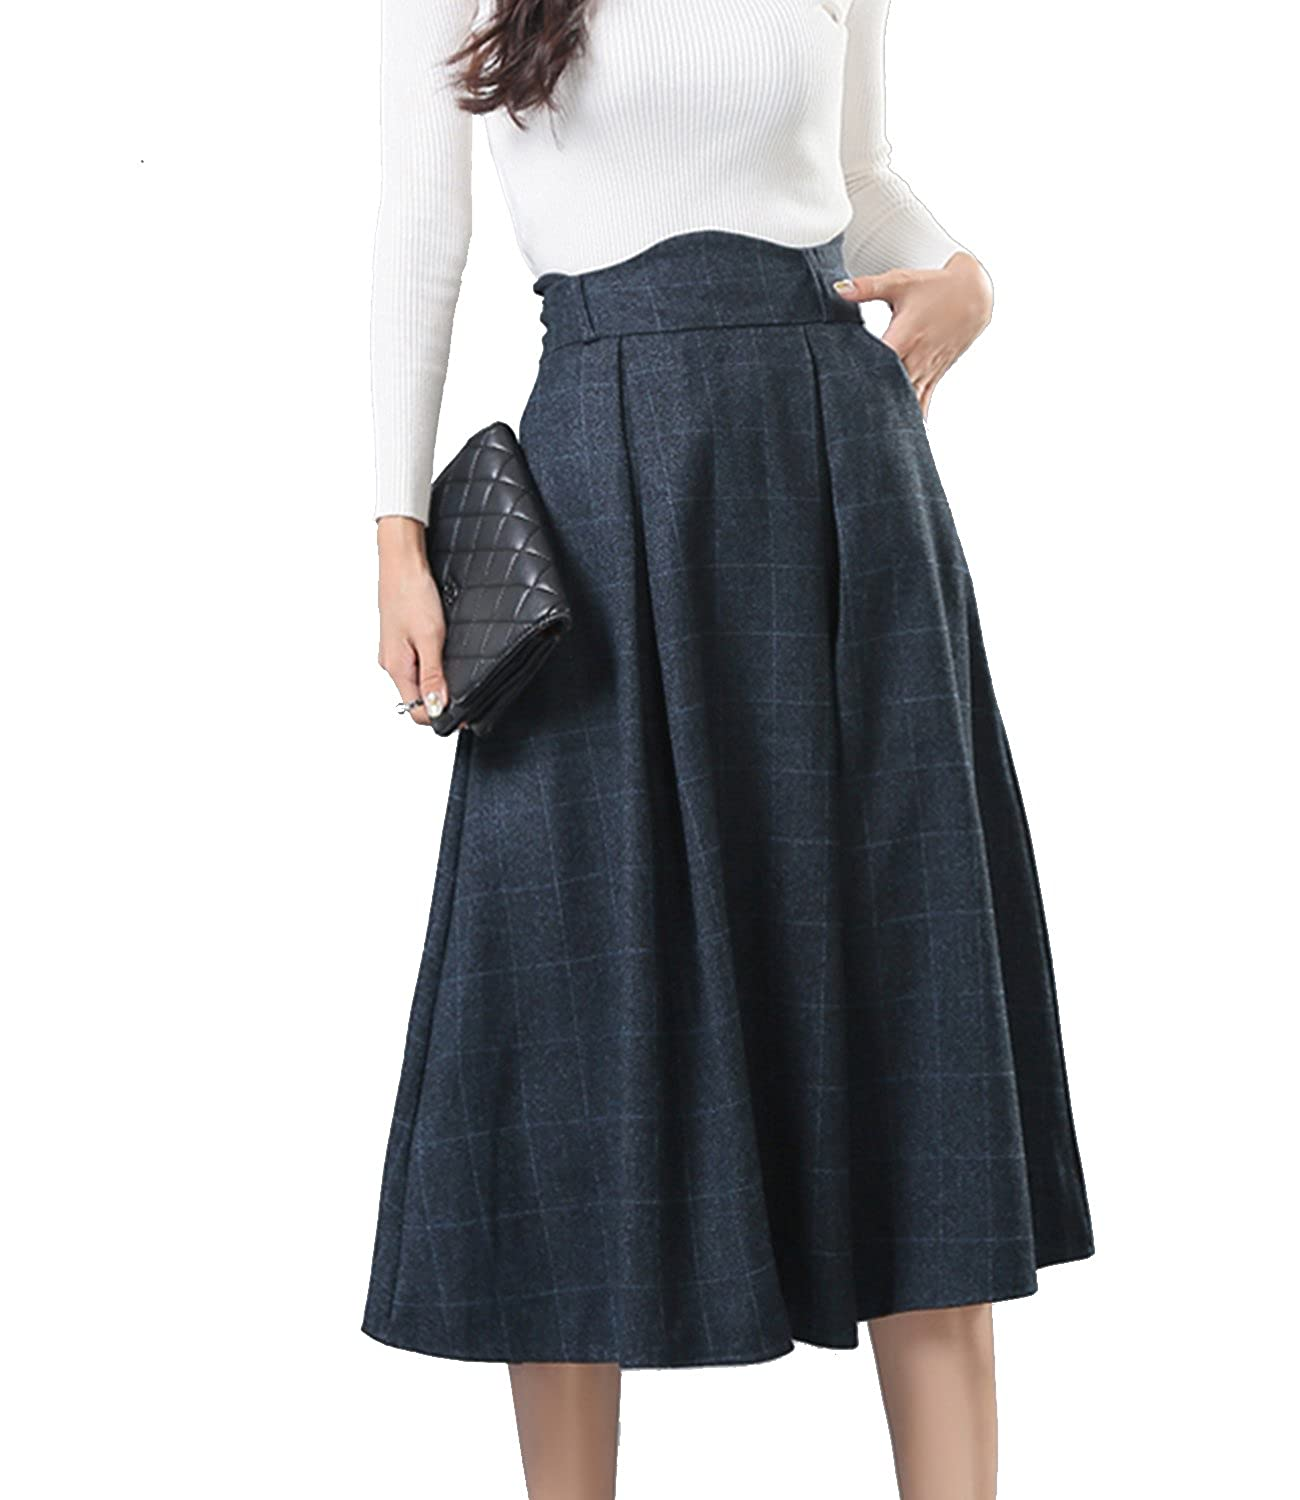 1890s-1905 Edwardian Gibson Girl Era Clothing Links Sanifer Womens Wool Plaid Flared Skirt Winter Fall Long Midi Skirt $28.99 AT vintagedancer.com